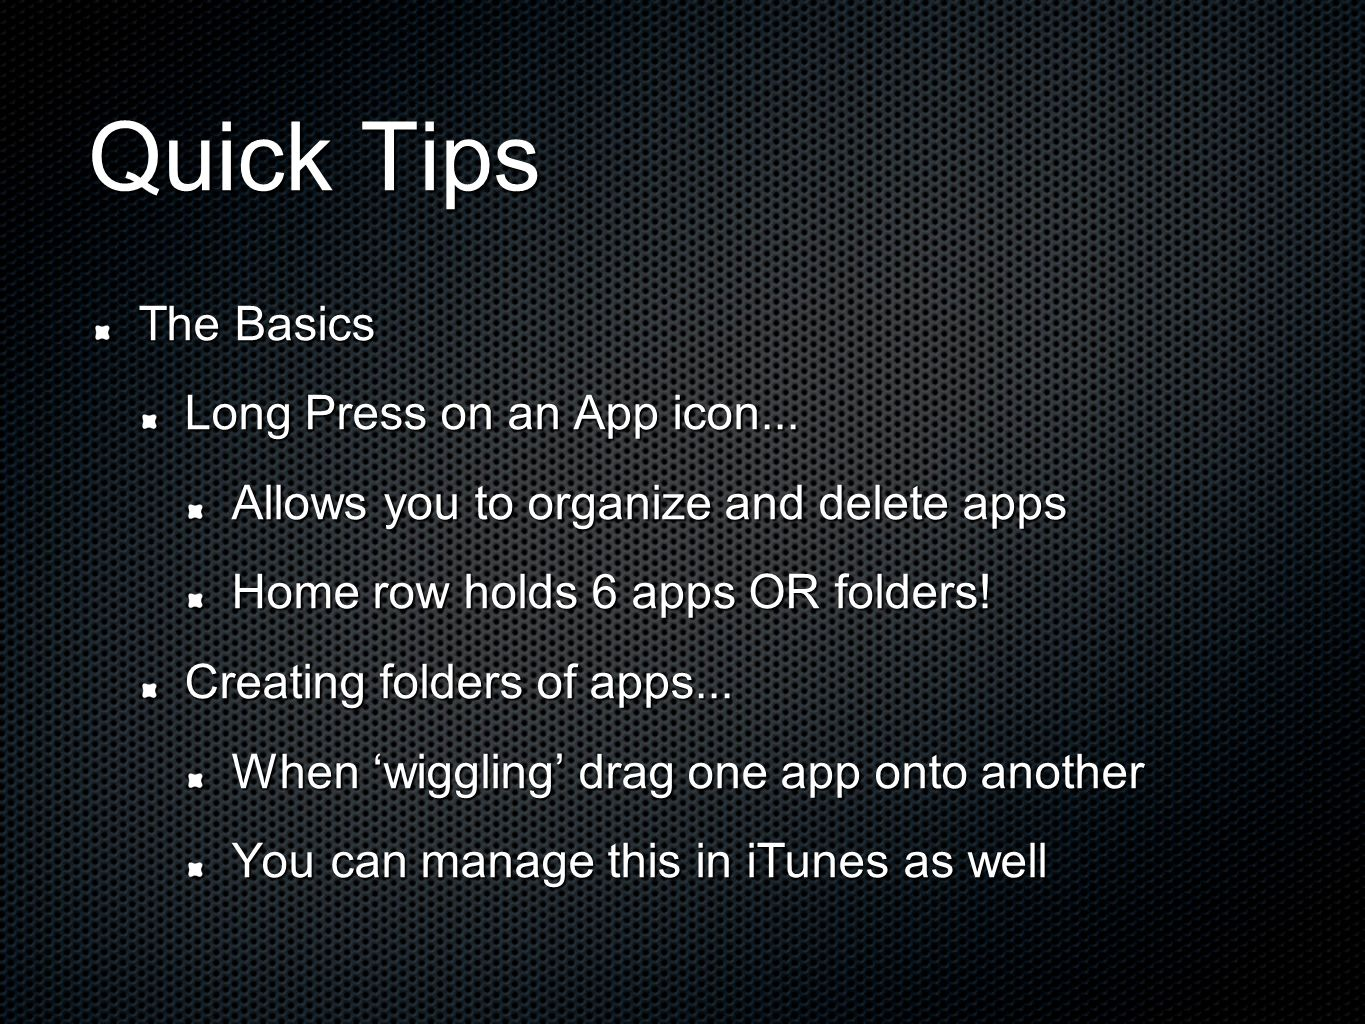 Quick Tips The Basics Long Press on an App icon...